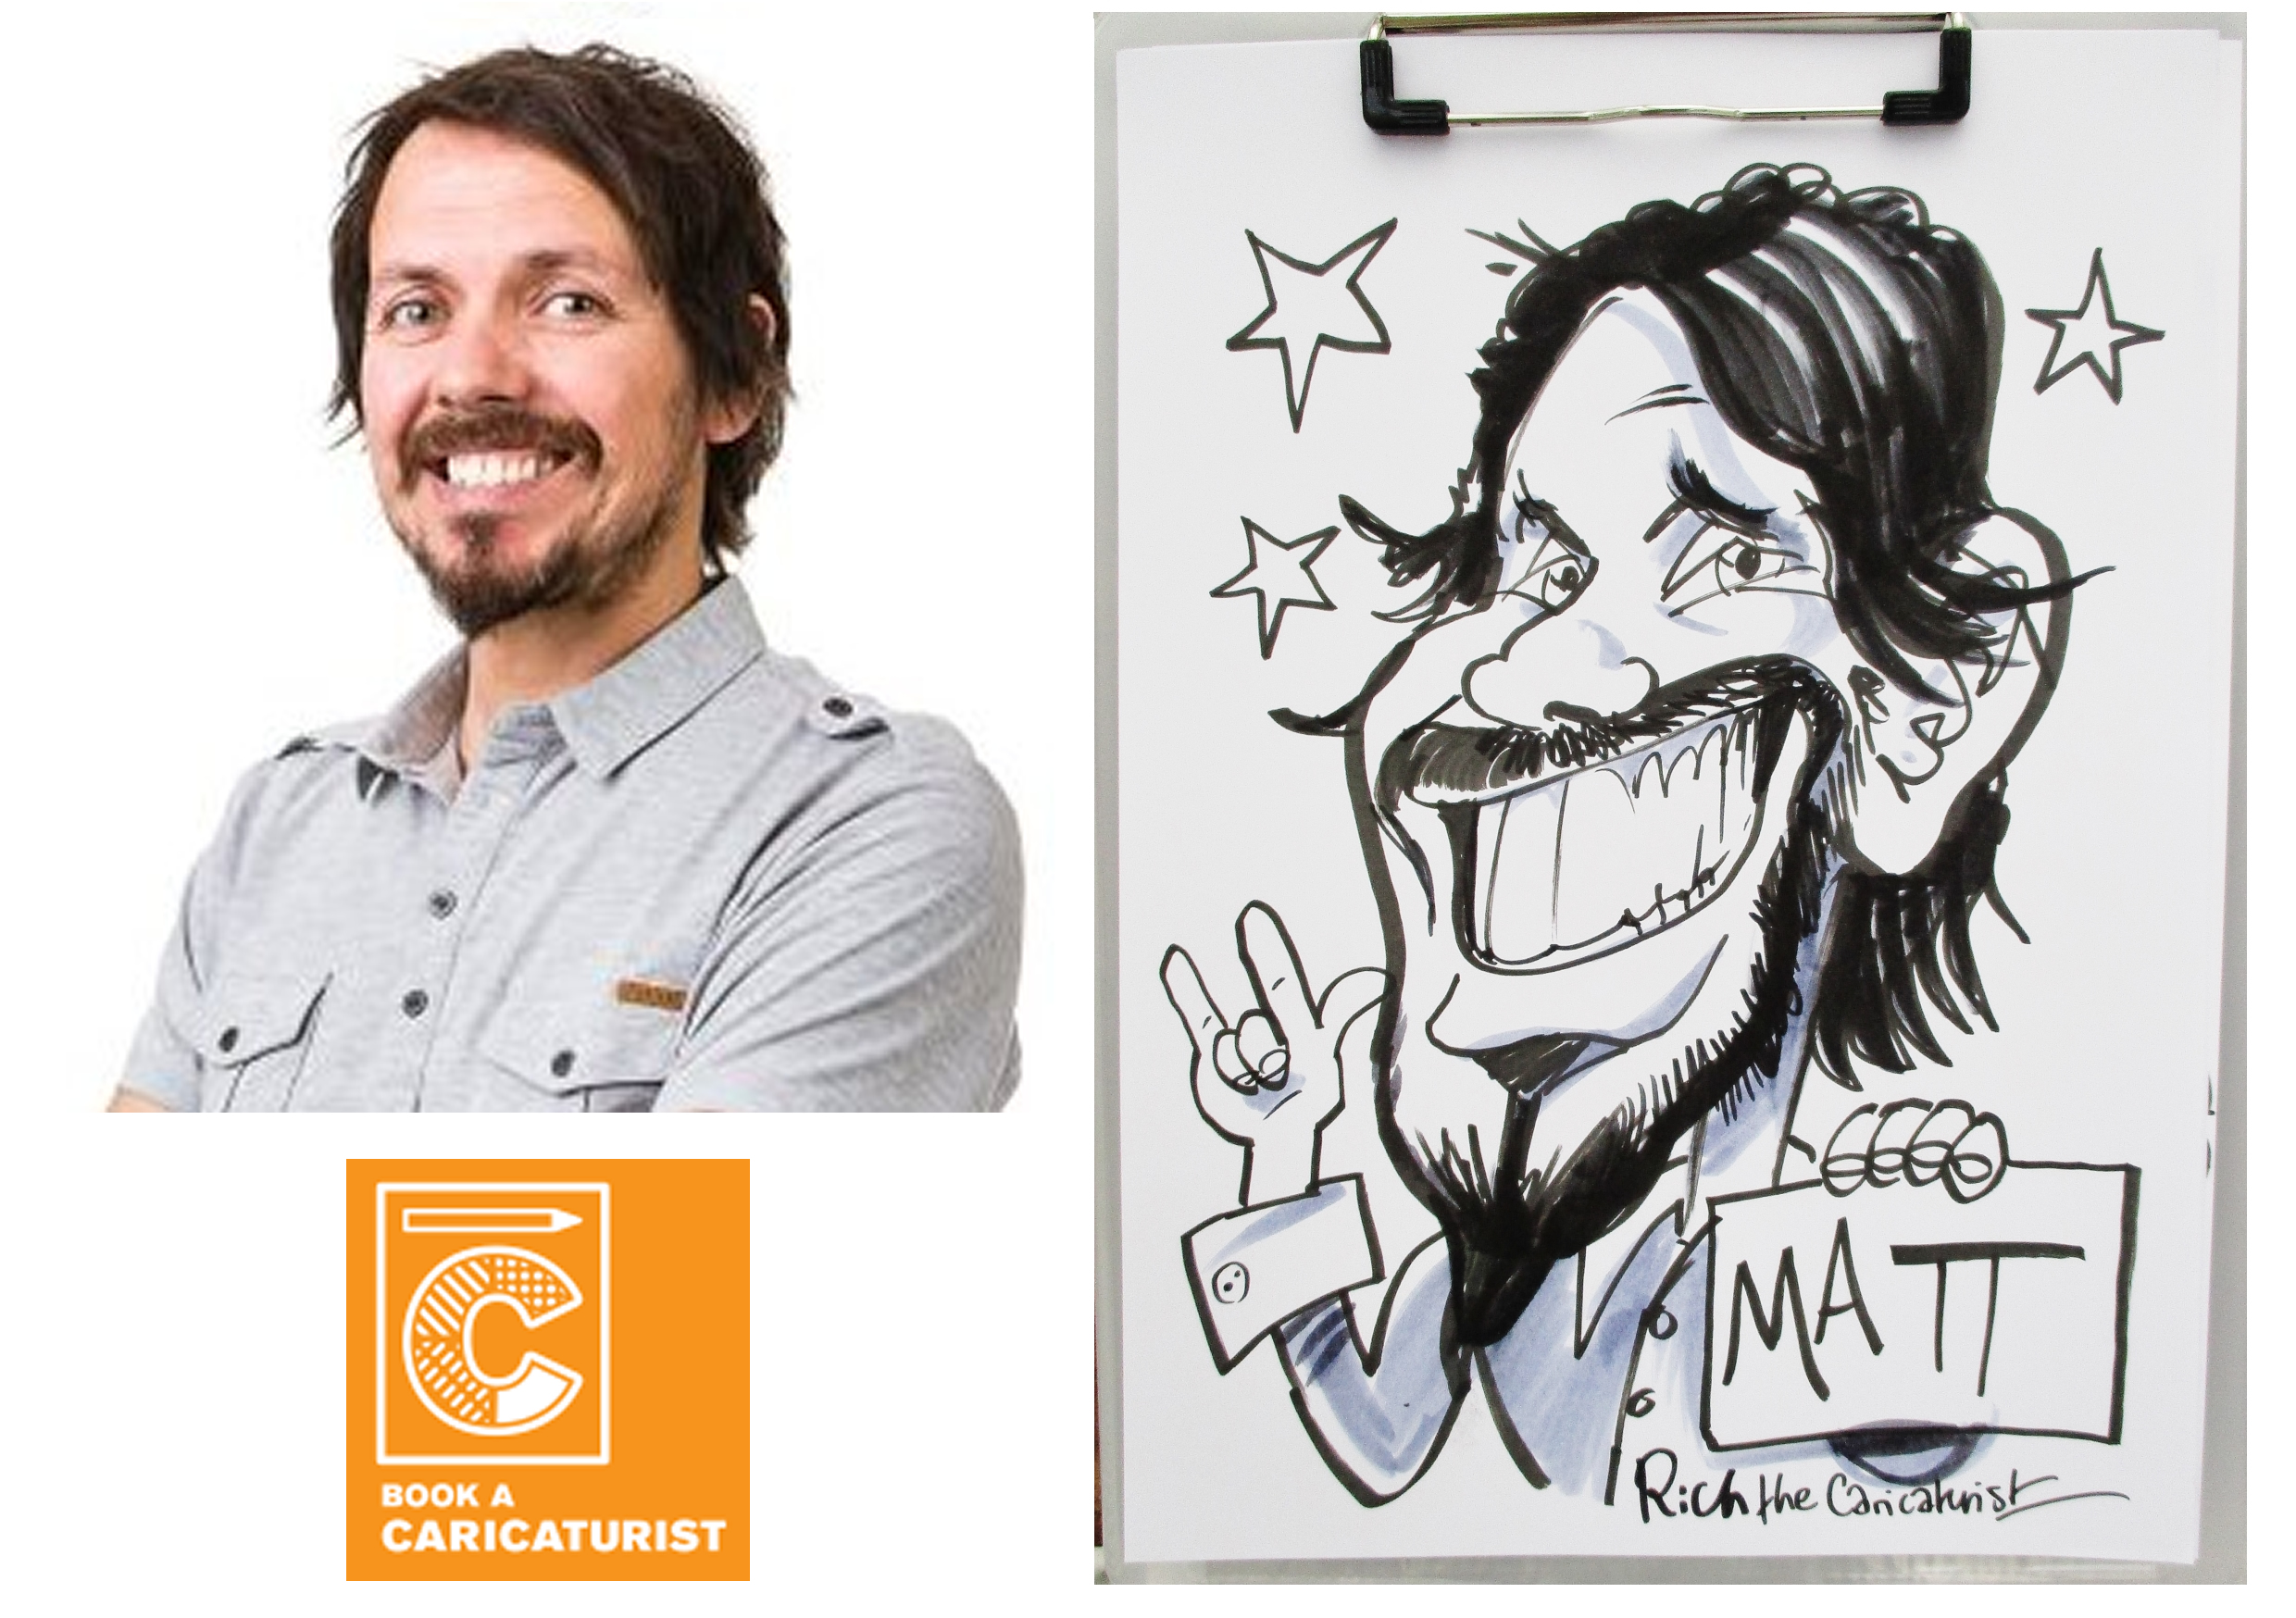 Matt from Warble by Rich the Caricaturist